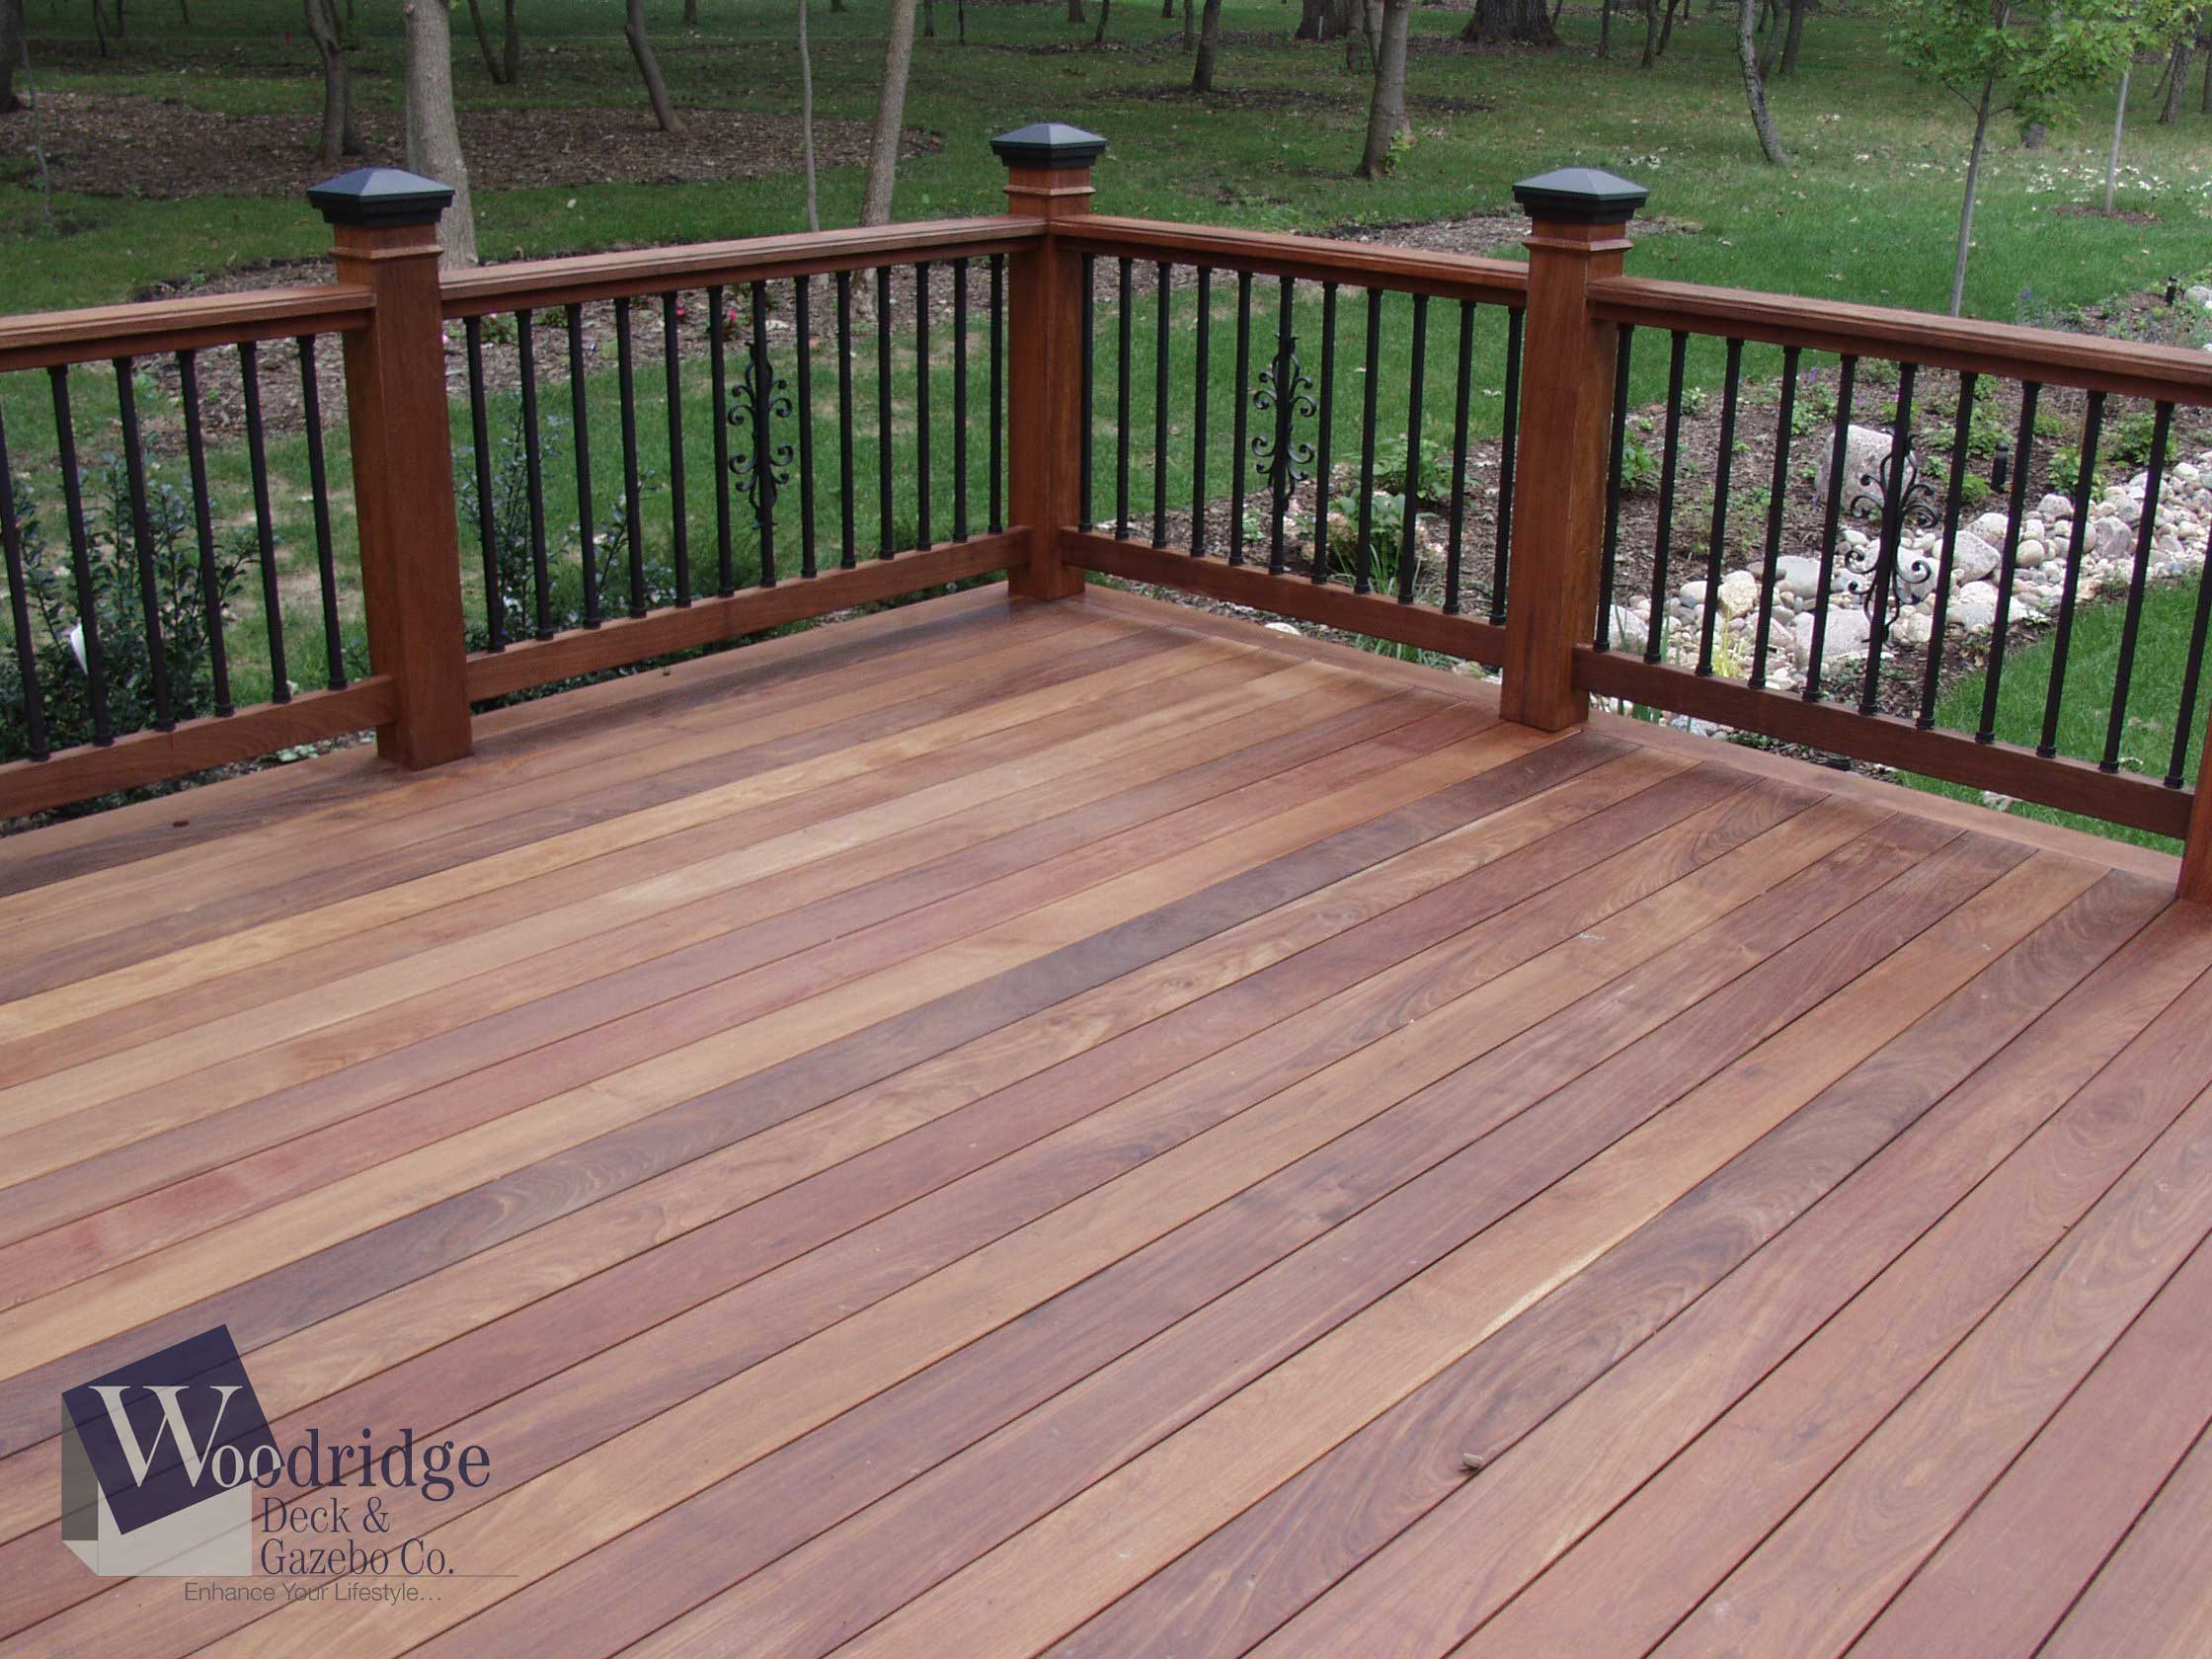 FF-02 Ipe Deck with Dekor Balusters